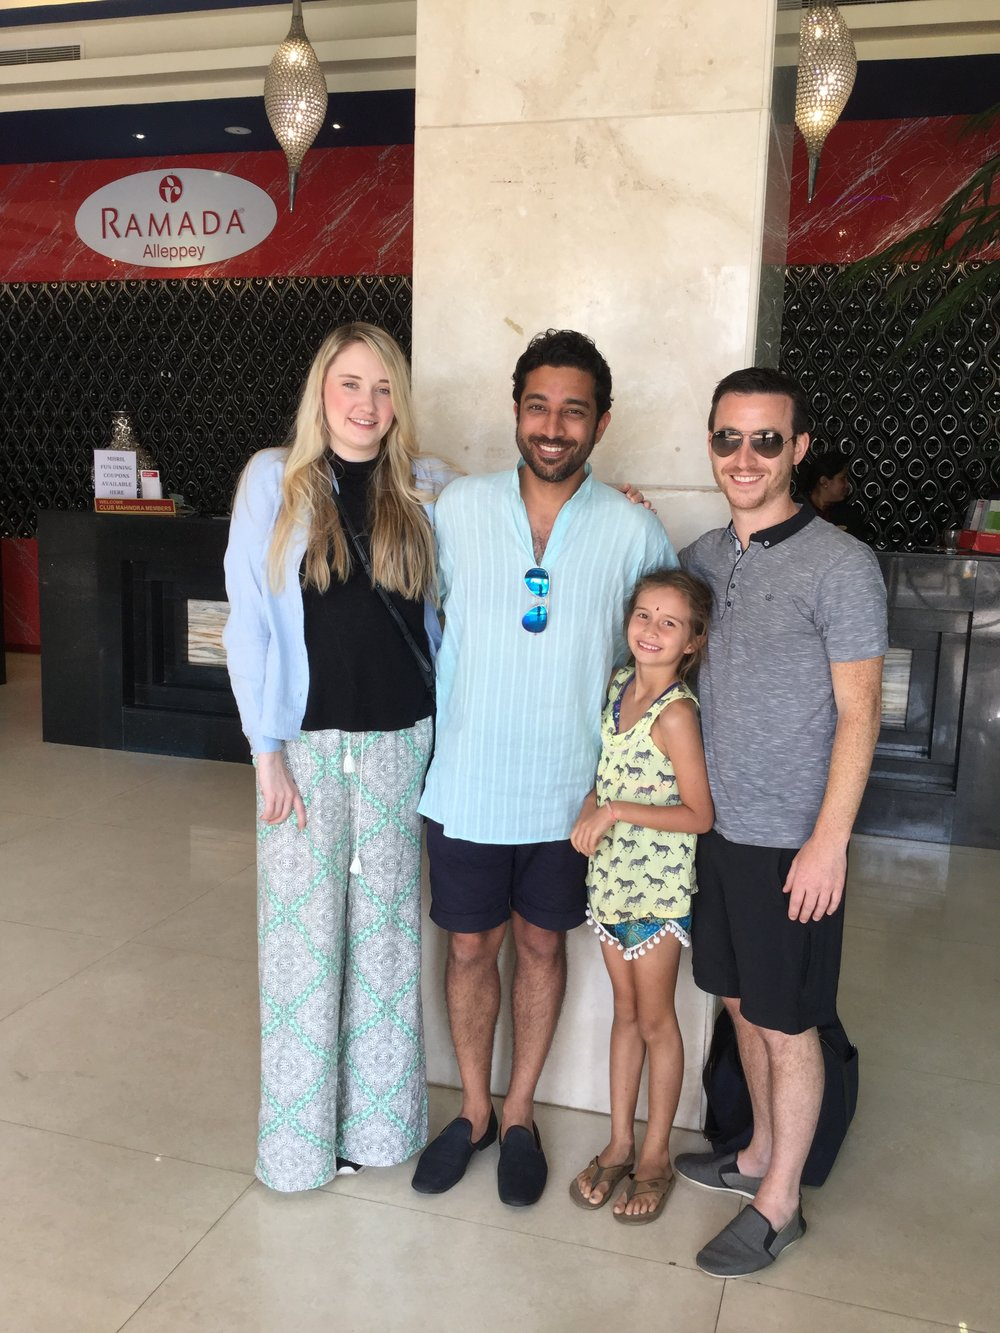 Emily, Bobby, Lili and Rob at the lobby of the Ramada in Alleppey. I have to extend a special note of gratitude to the Ramada staff who were extremely kind and welcoming to us even though we were not staying there (Bobby & troupe were). We spent some really great times at their pool and games area playing carrom / carambol and badminton.